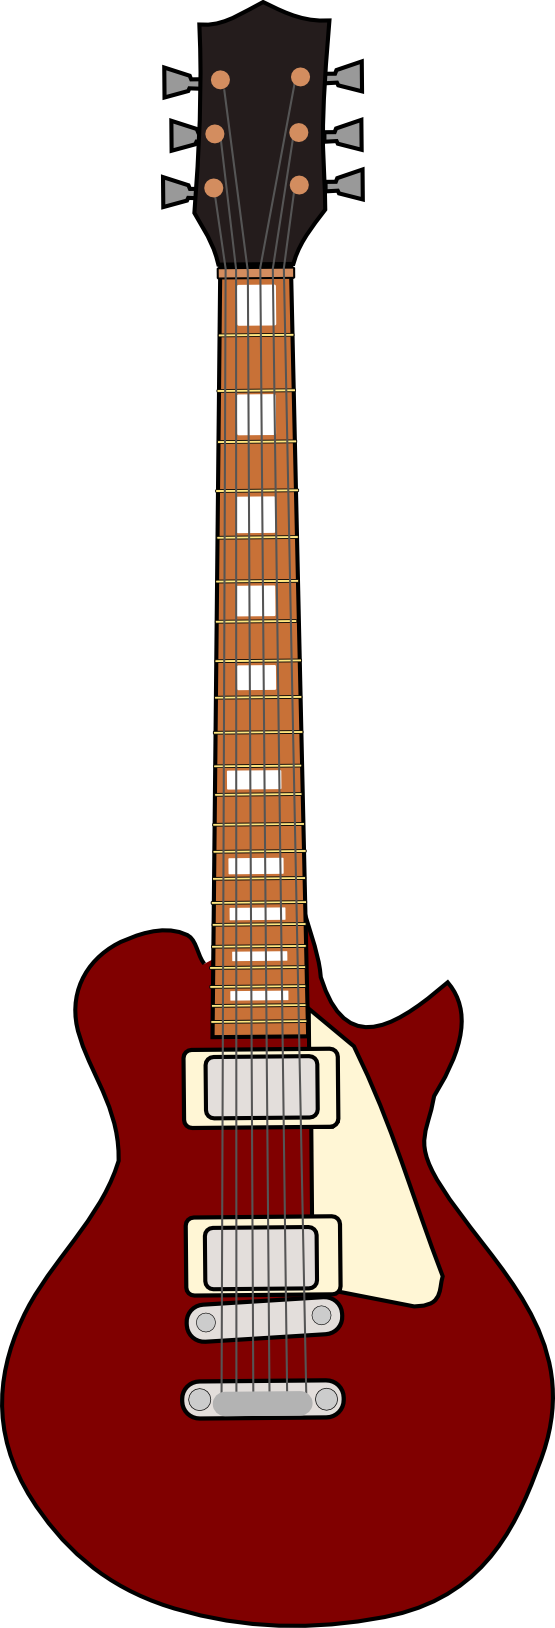 Clipart cake music. Guitar yahoo image search